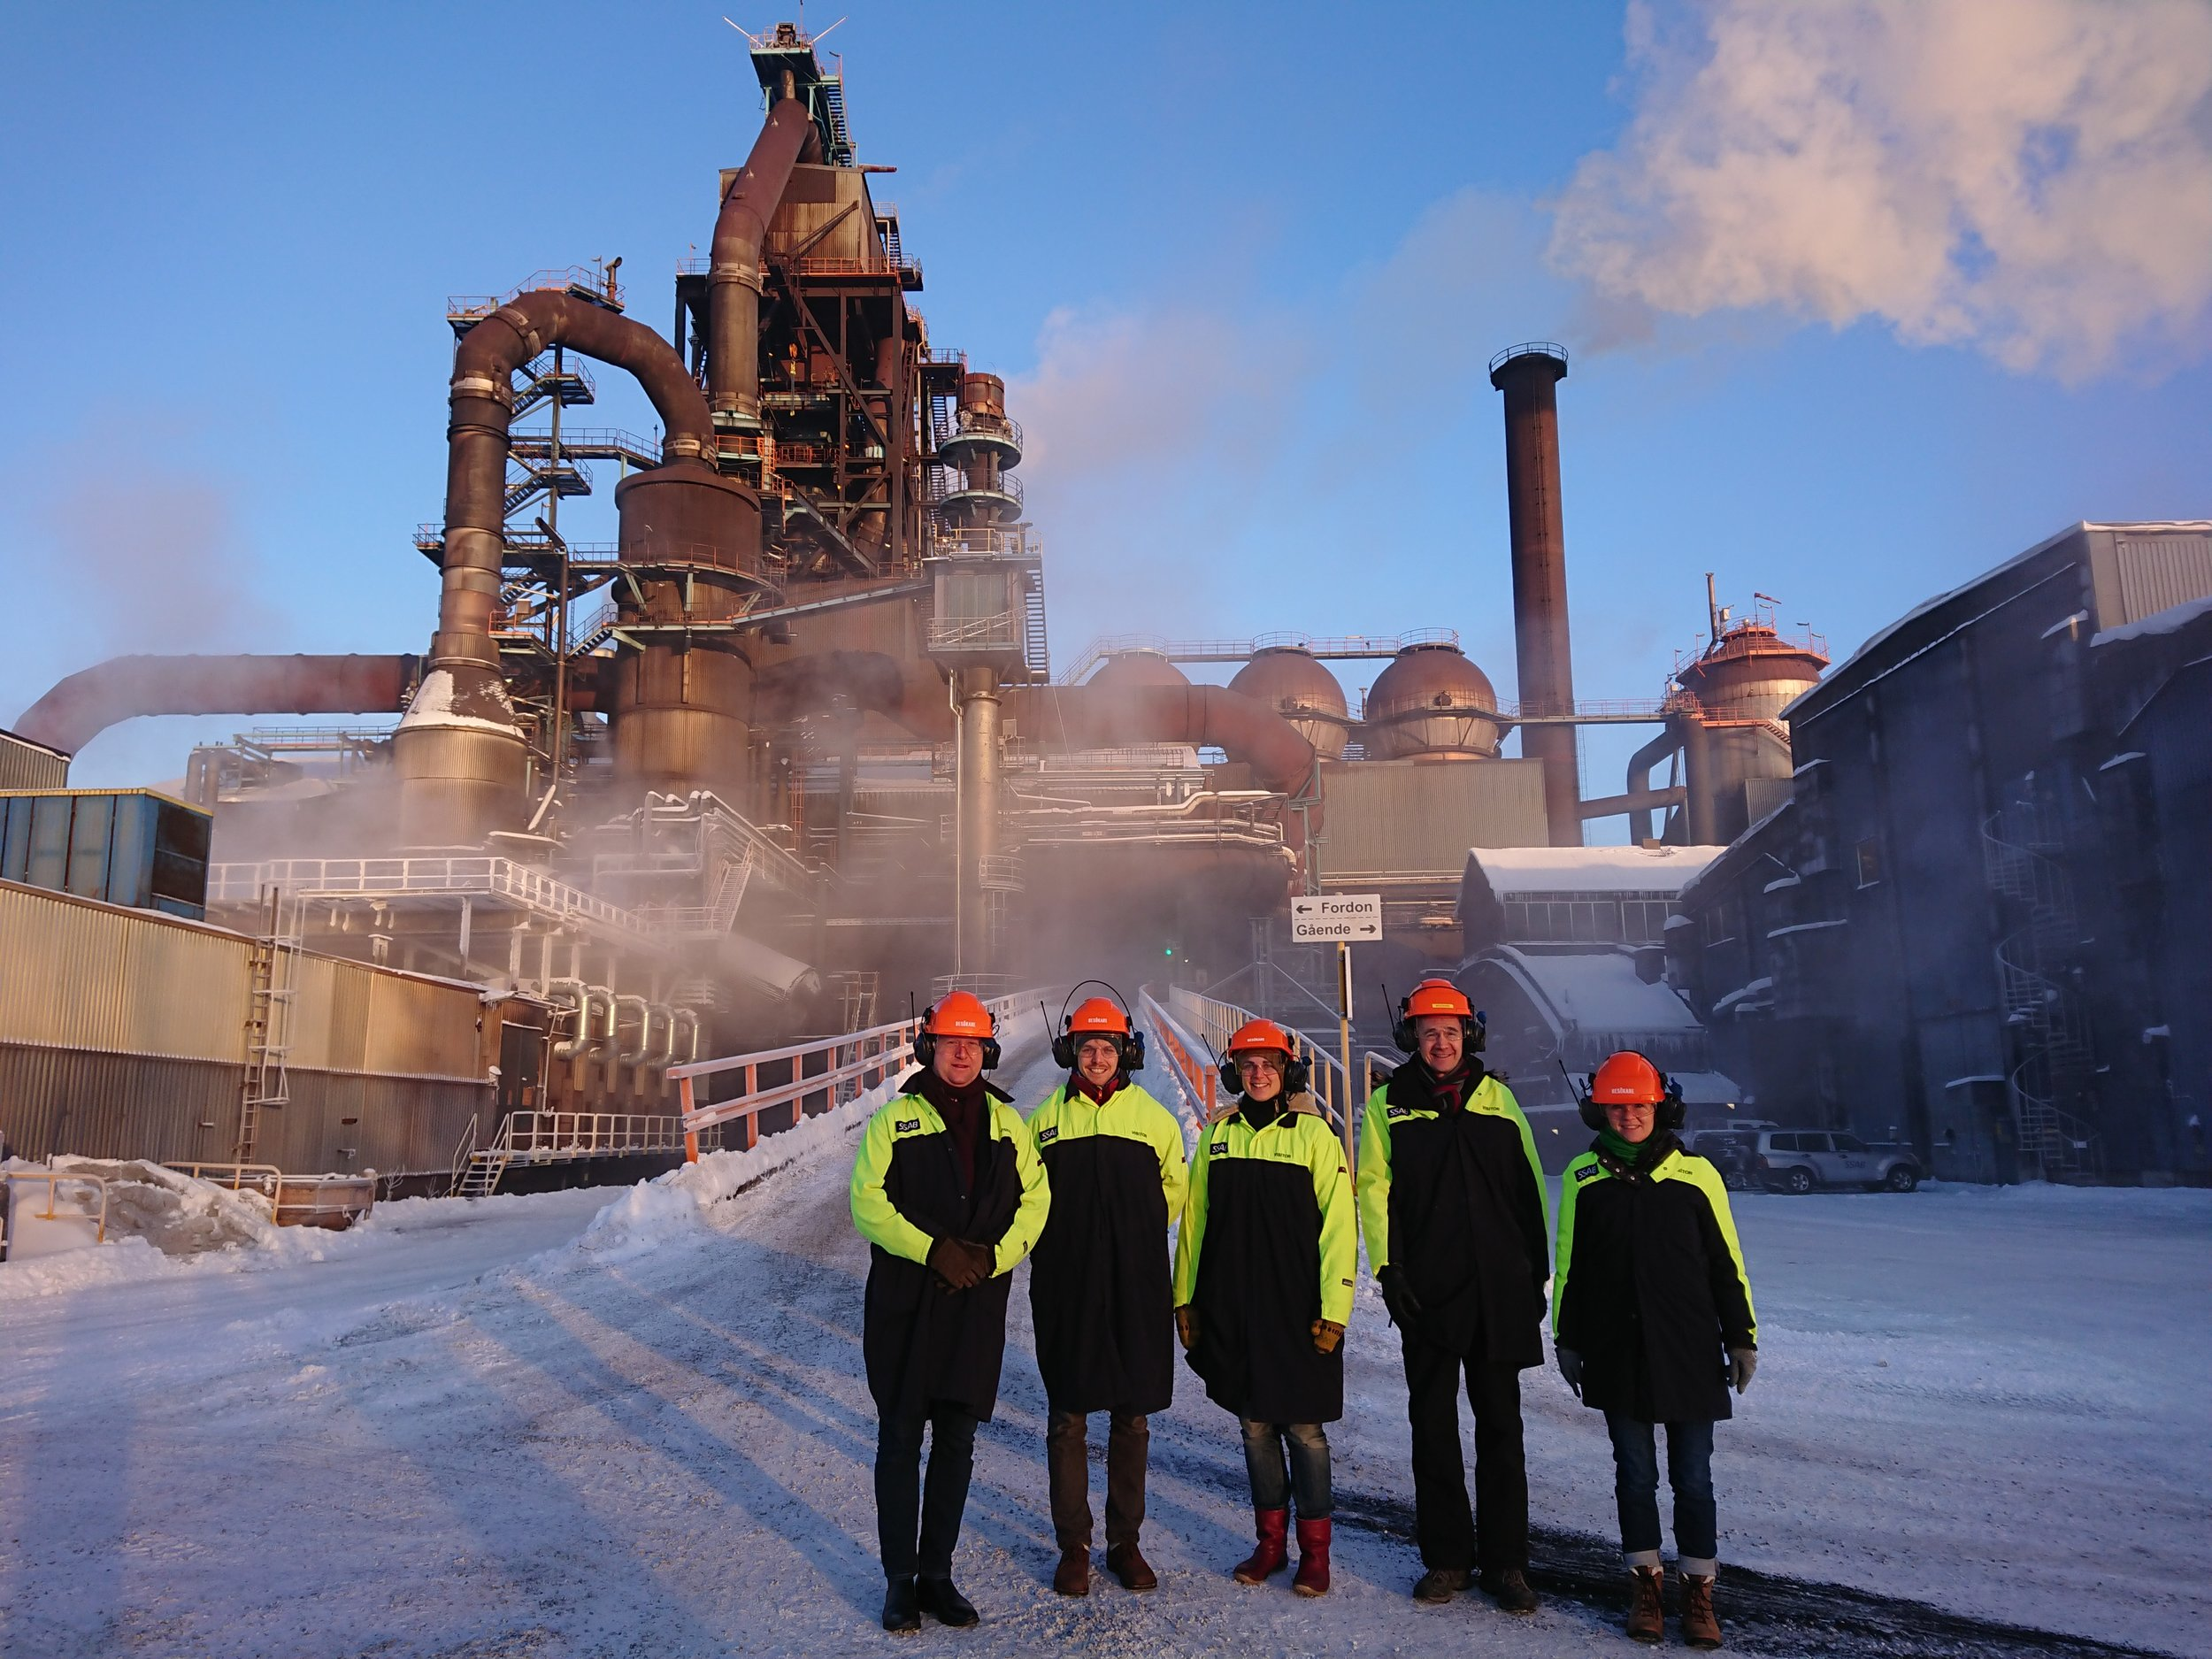 The last Swedish blast furnace, Luleå 2044    In 2042 this blast furnace was closed, marking the end of fossil steel production. A team of researchers were visiting to study the dismantling process.